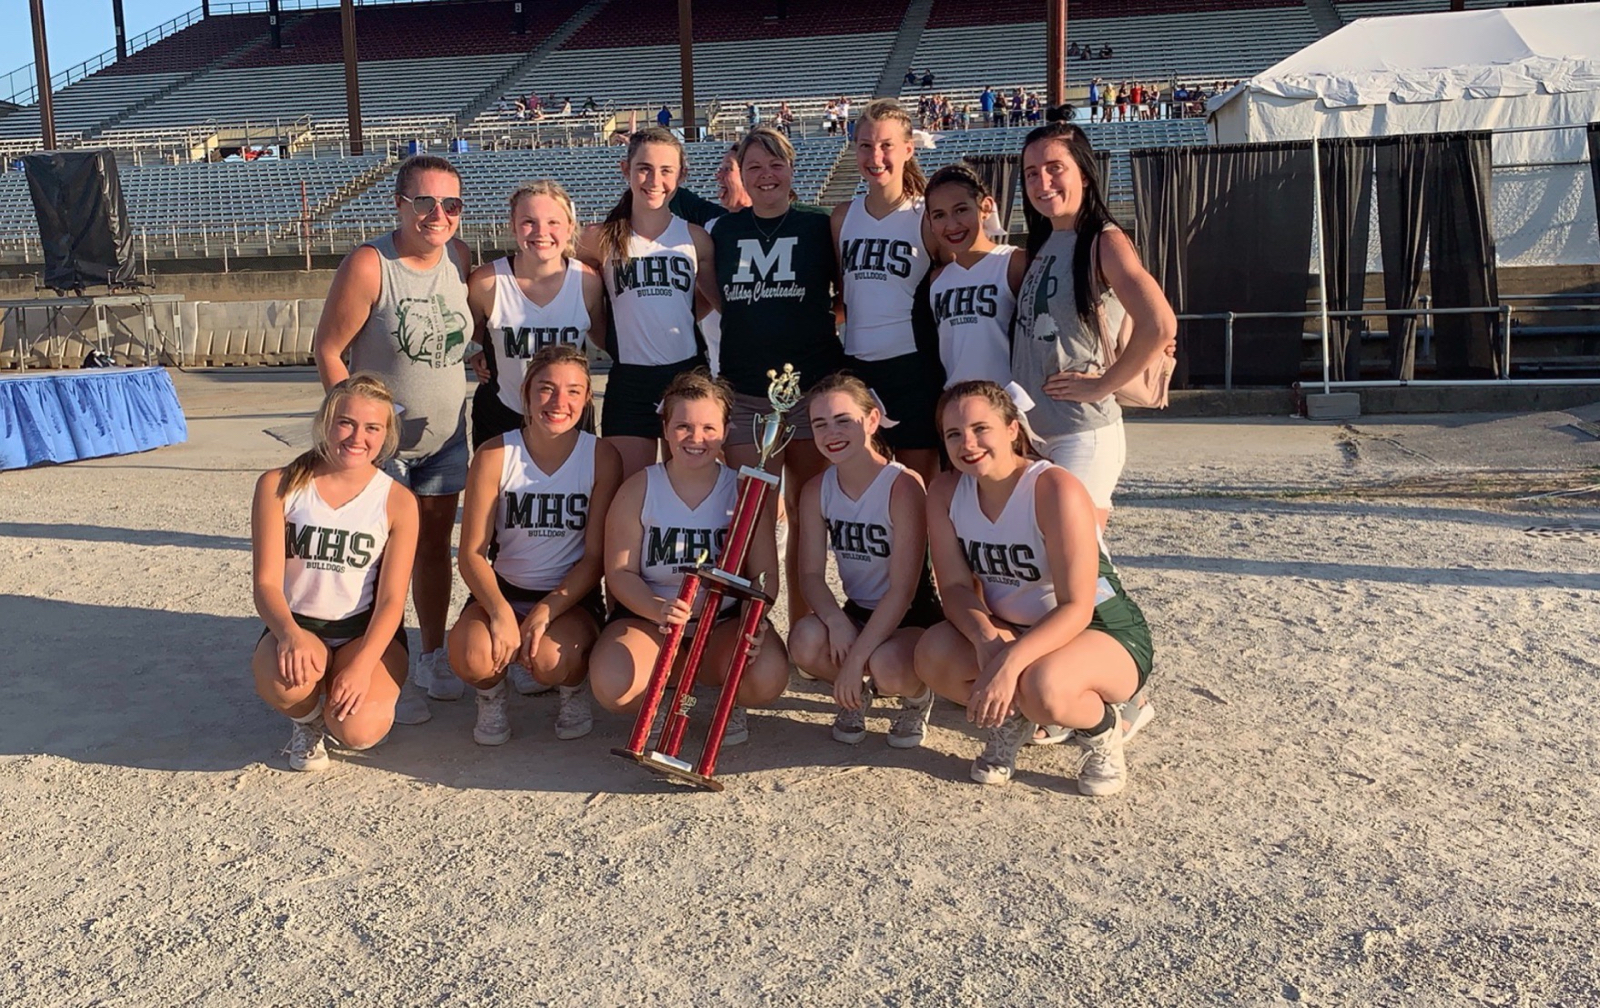 Varsity Cheer Takes 1st Place at Indiana State Fair